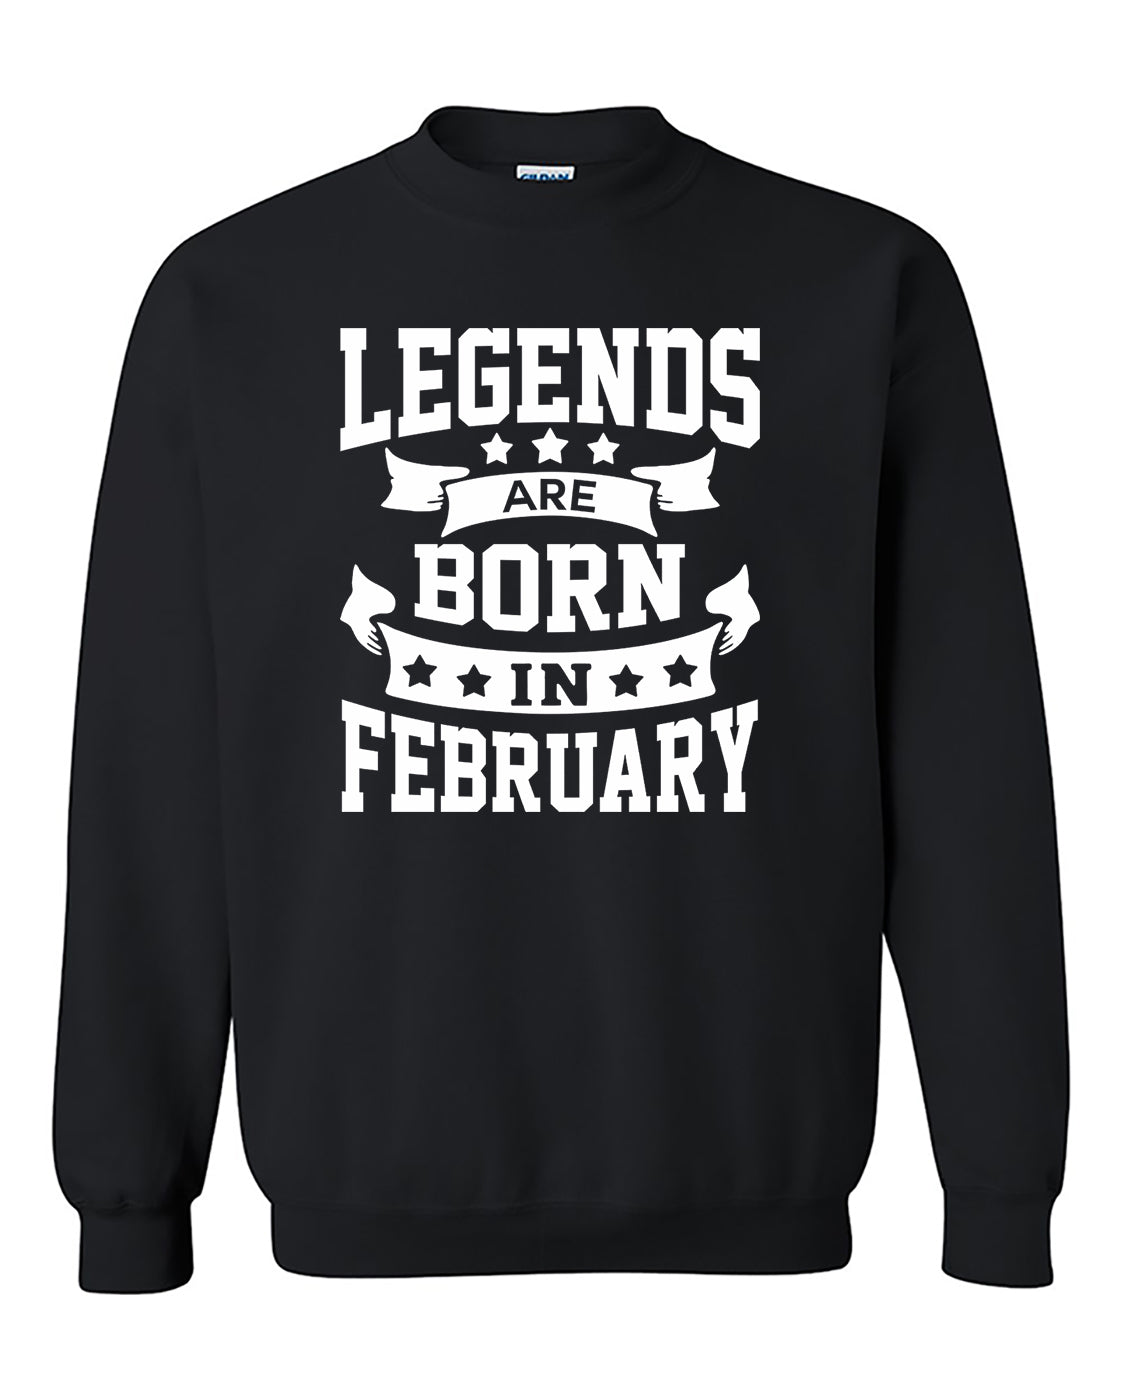 Legends are born in February Crewneck Sweater